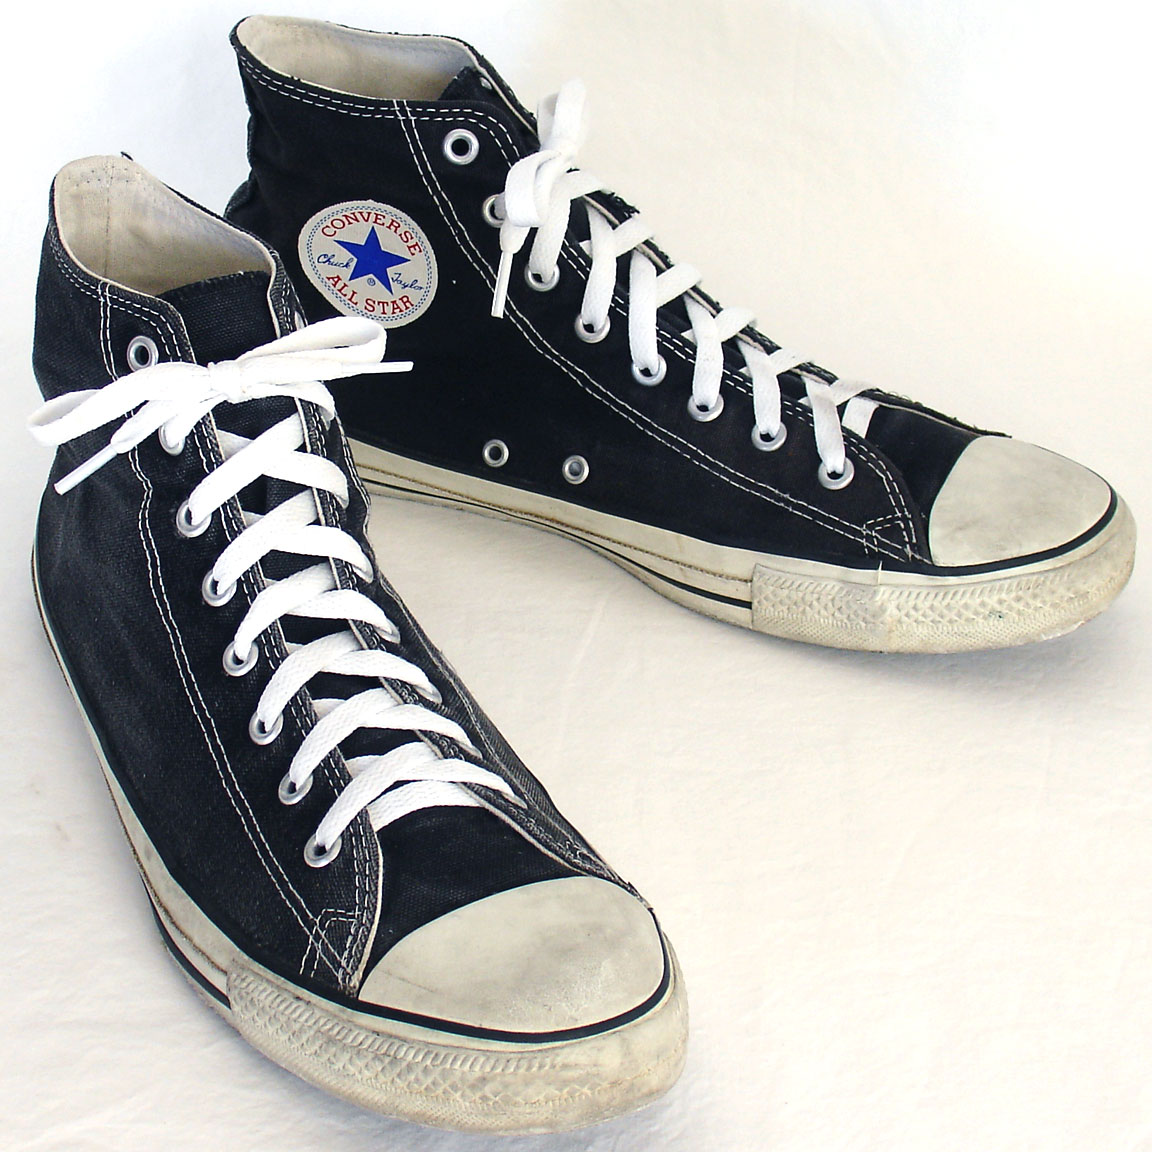 12b66a82478 Vintage American-made Converse All Star Chuck Taylor black hi-top shoes for  sale